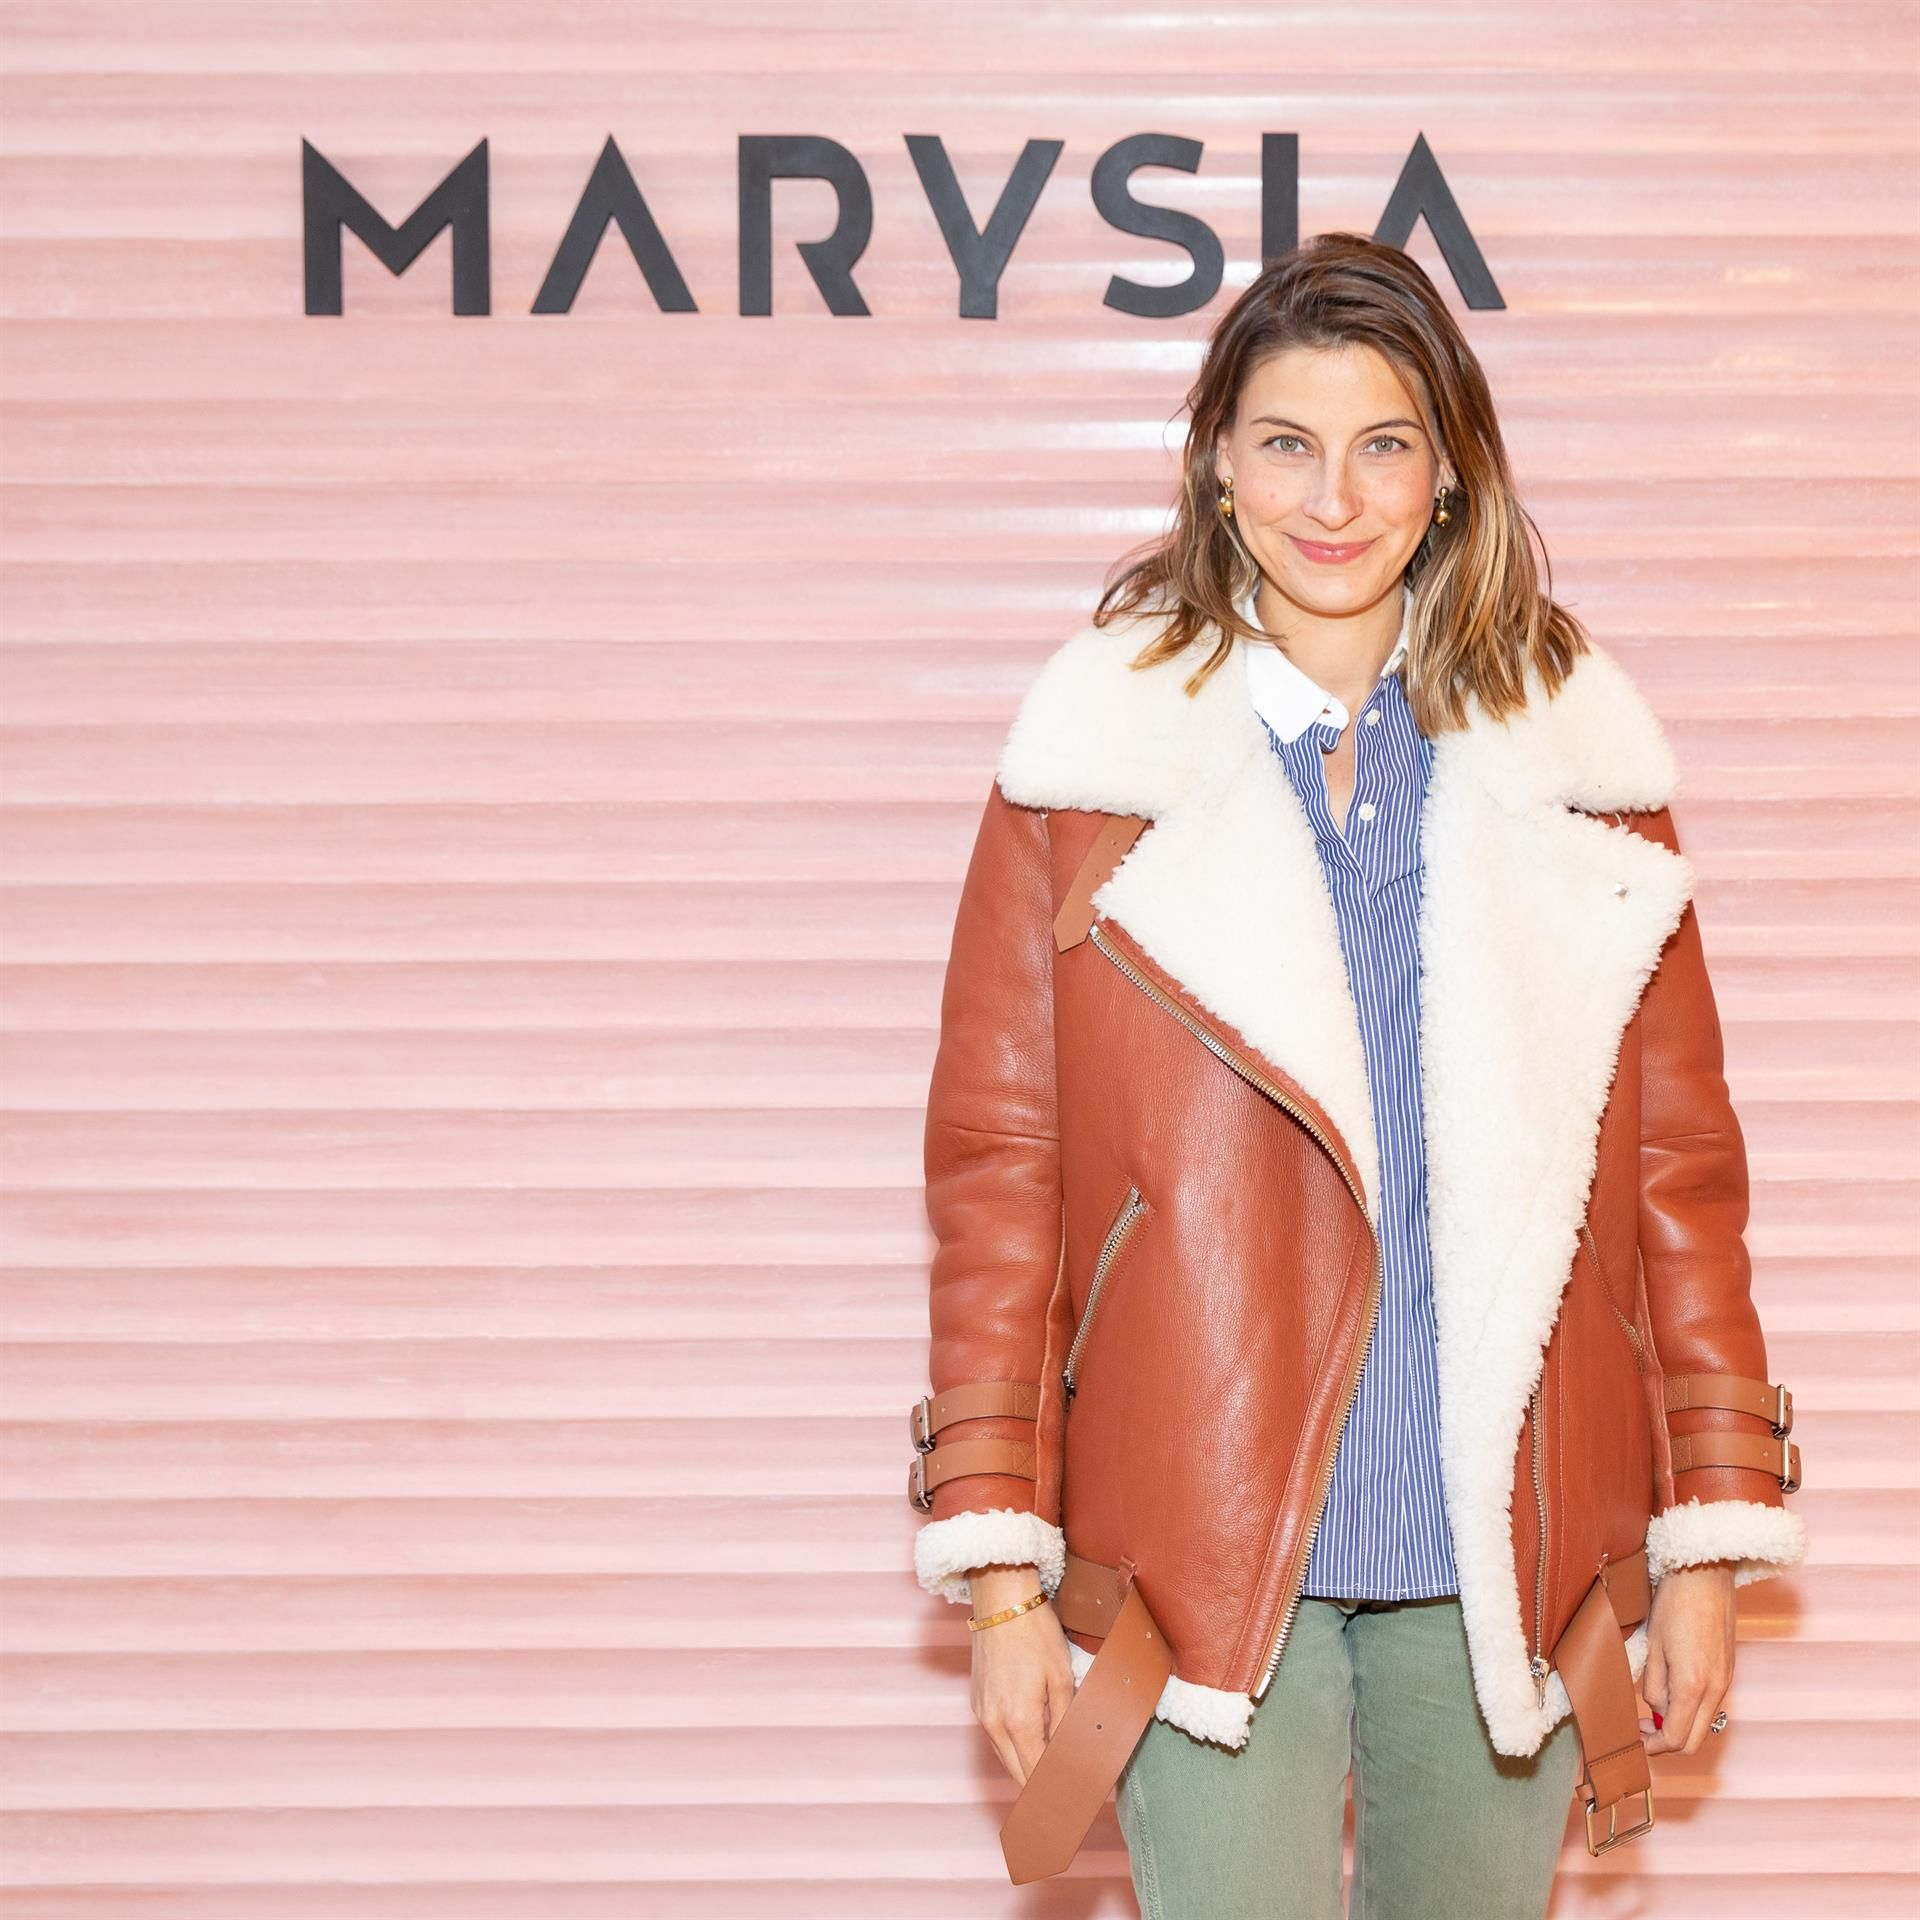 Sylvana Ward Durrett Sylvana Ward Durrett celebrates the opening of the Marysia Soho boutique on April 4 in New York City.